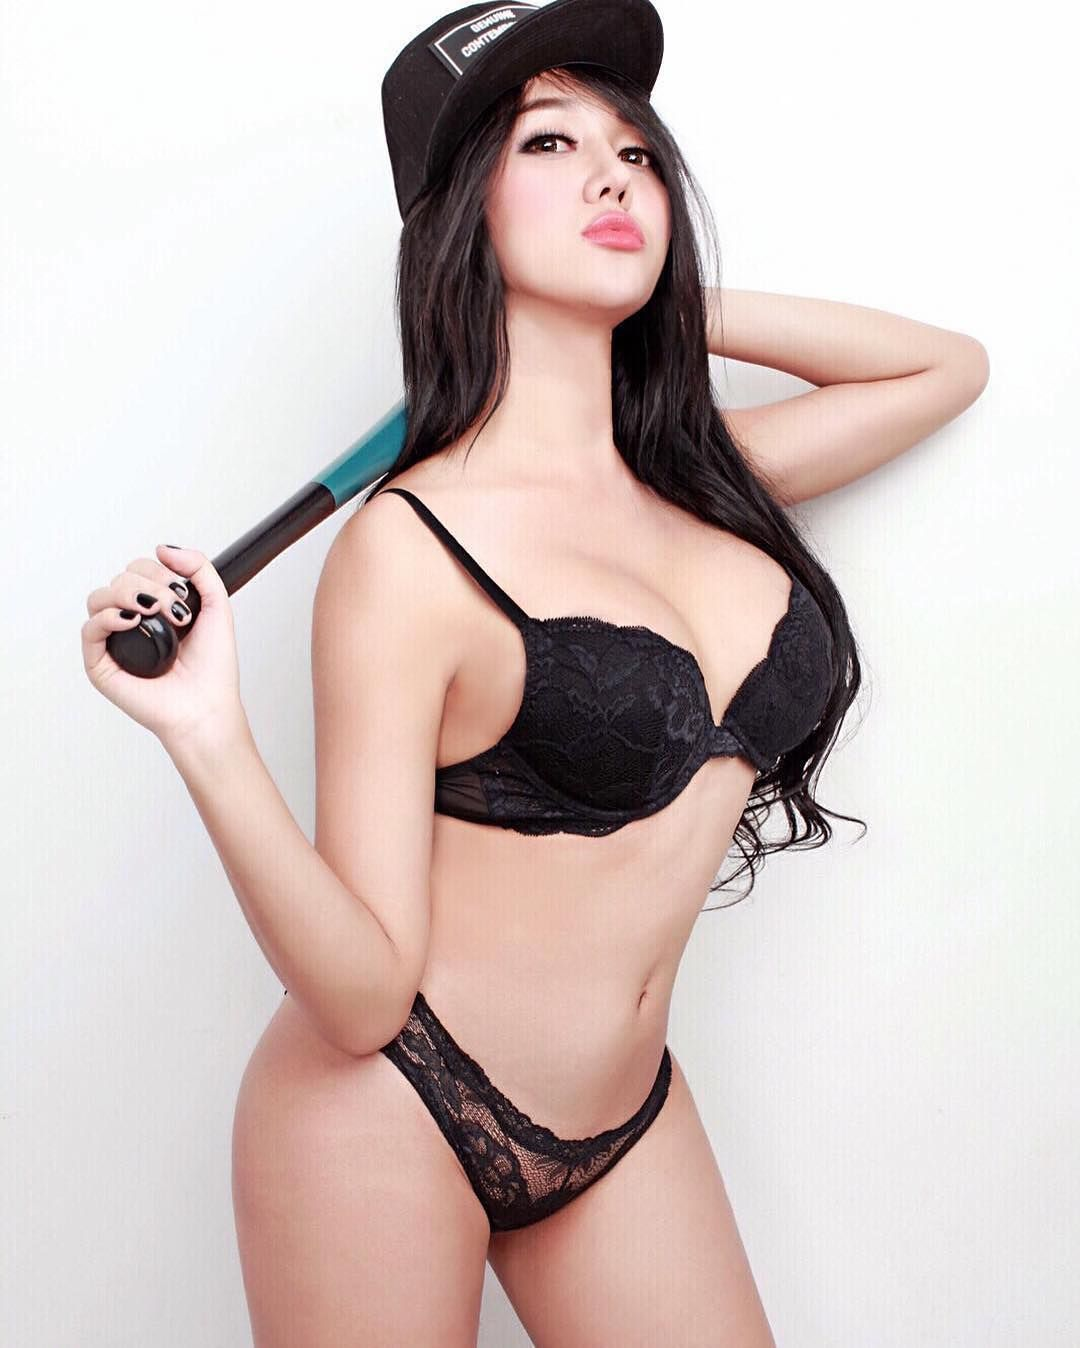 Apologise, but, Indonesia girls sex fhoto